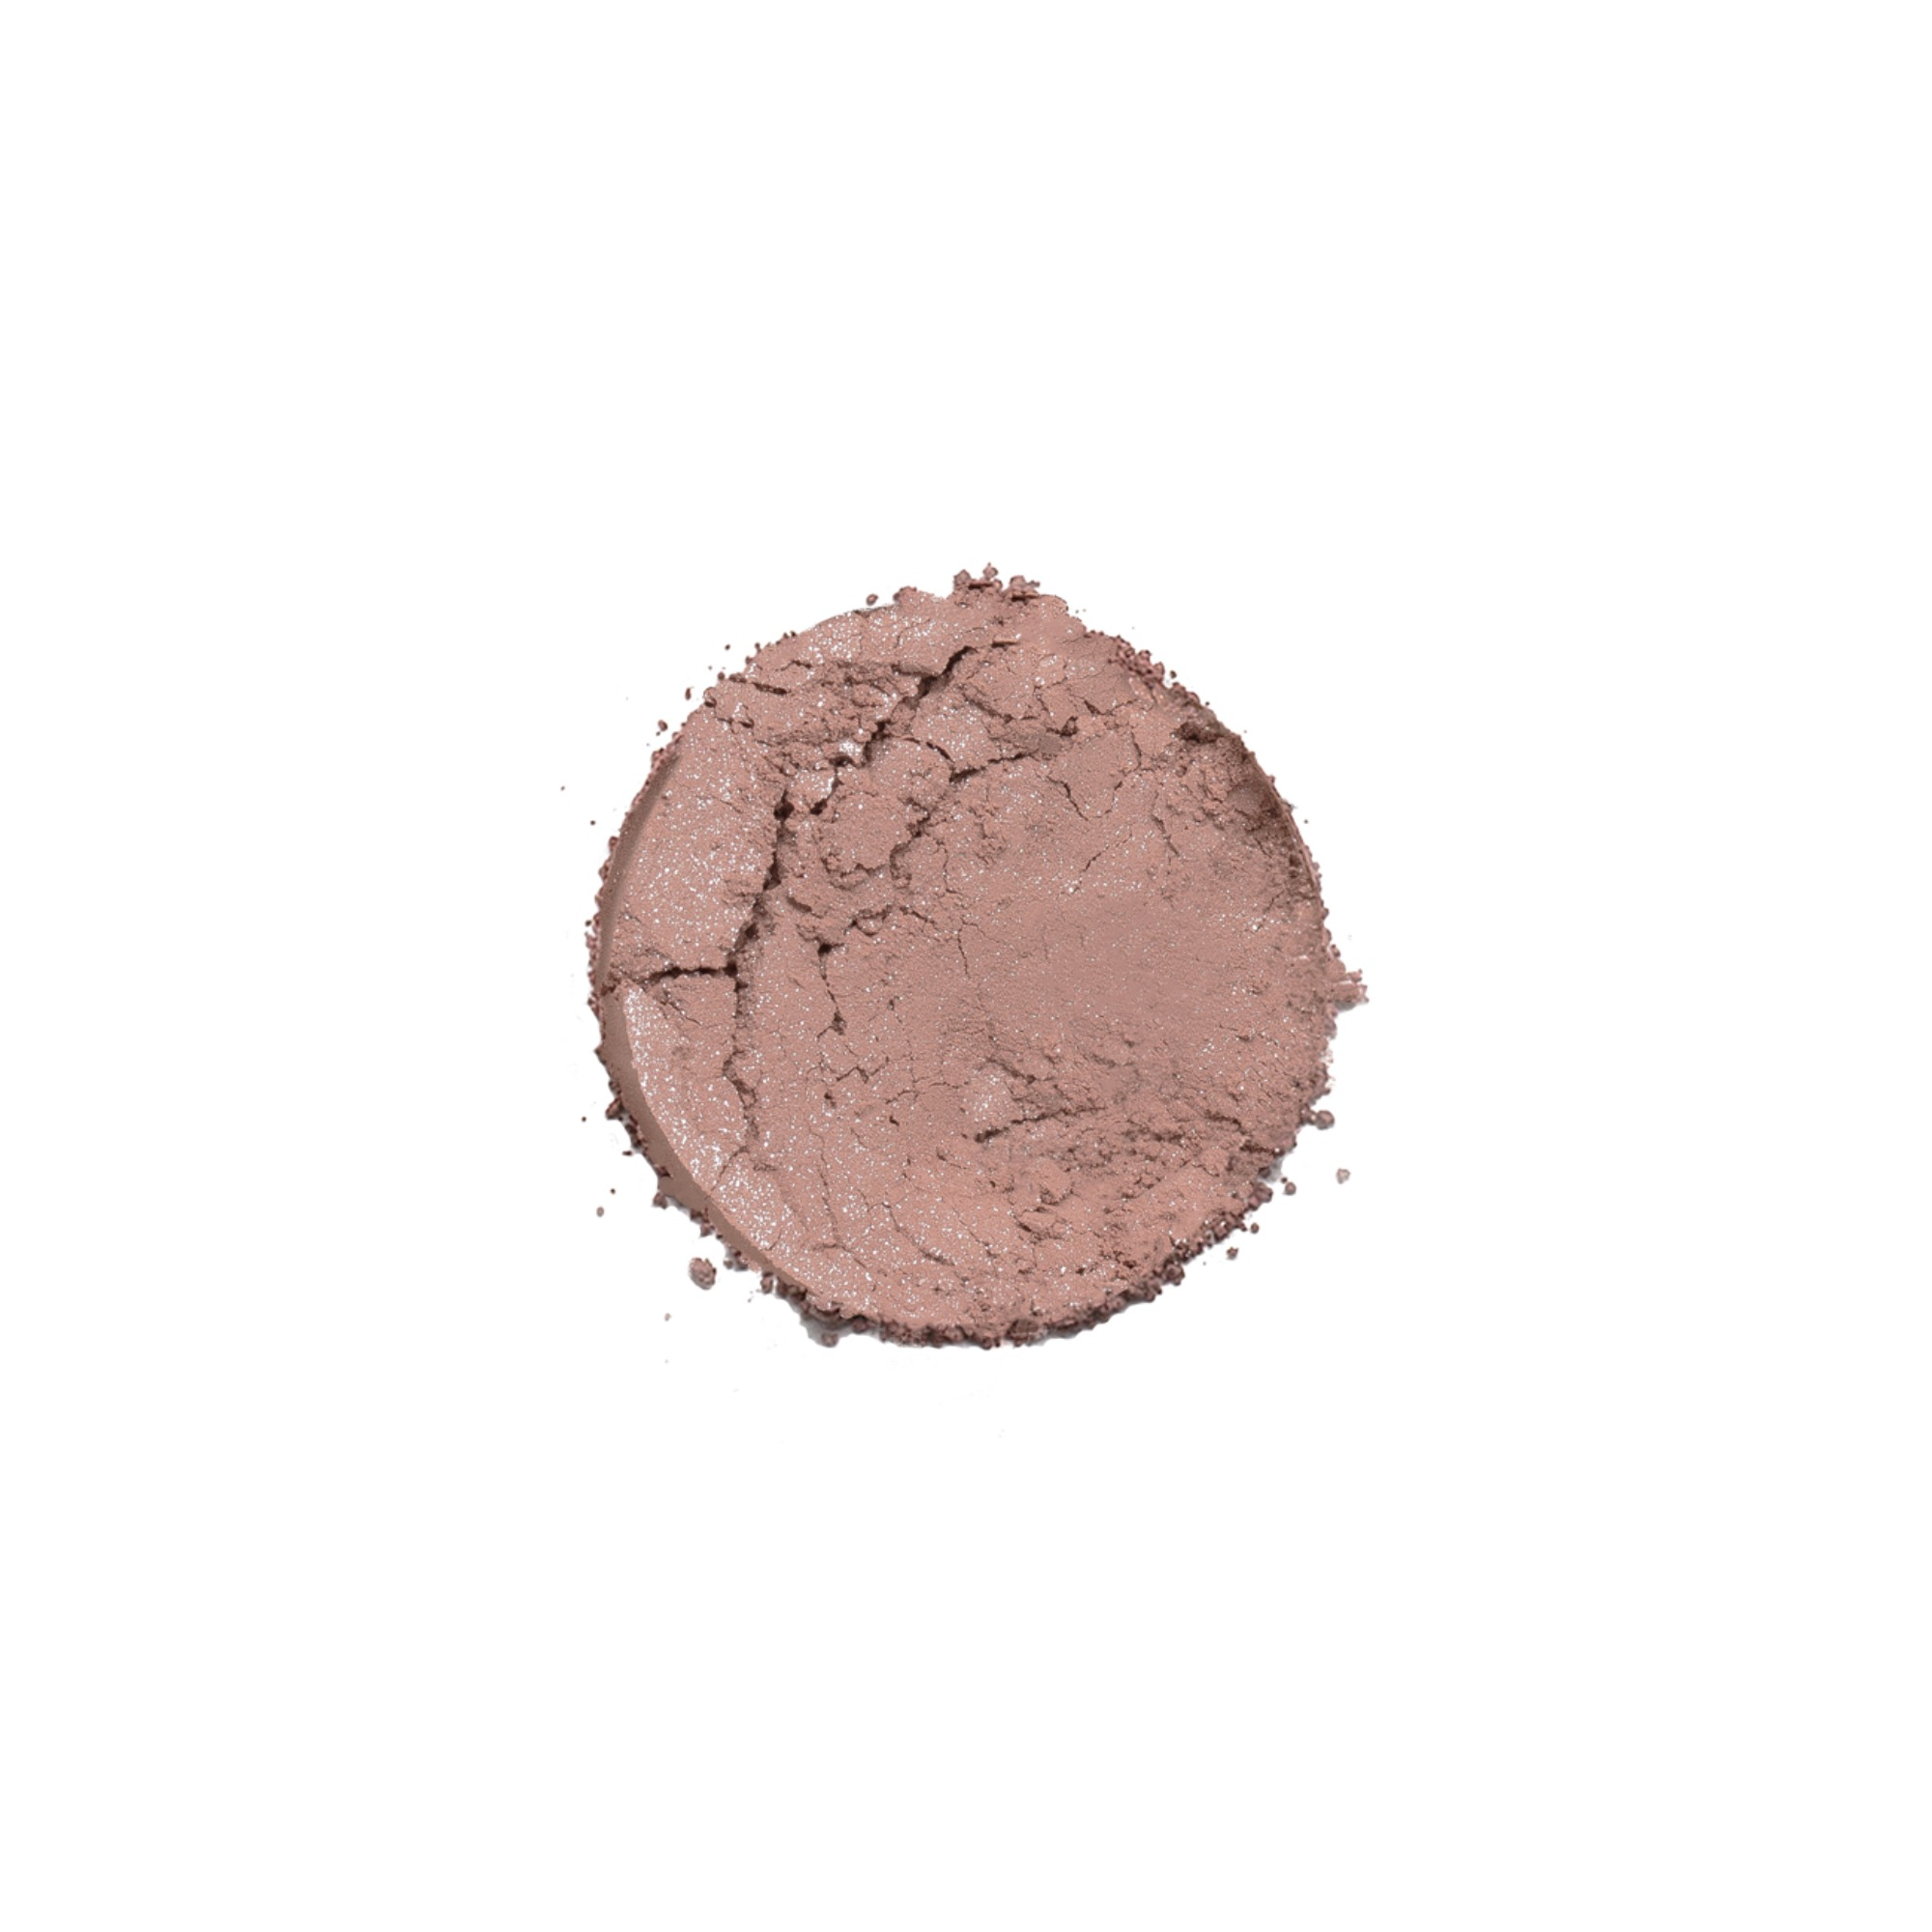 INSPIRED EYESHADOW    This shade is a shimmery light mauve color. Savvy Minerals eyeshadows are made with a finely ground mineral base, so they have a smooth, luxurious application and high-quality ingredients. They're formulated without fillers, synthetic fragrances, or parabens. Plus, its long-lasting formula leaves you with a gorgeous look you can wear all day.   Click here   to learn more about this product.